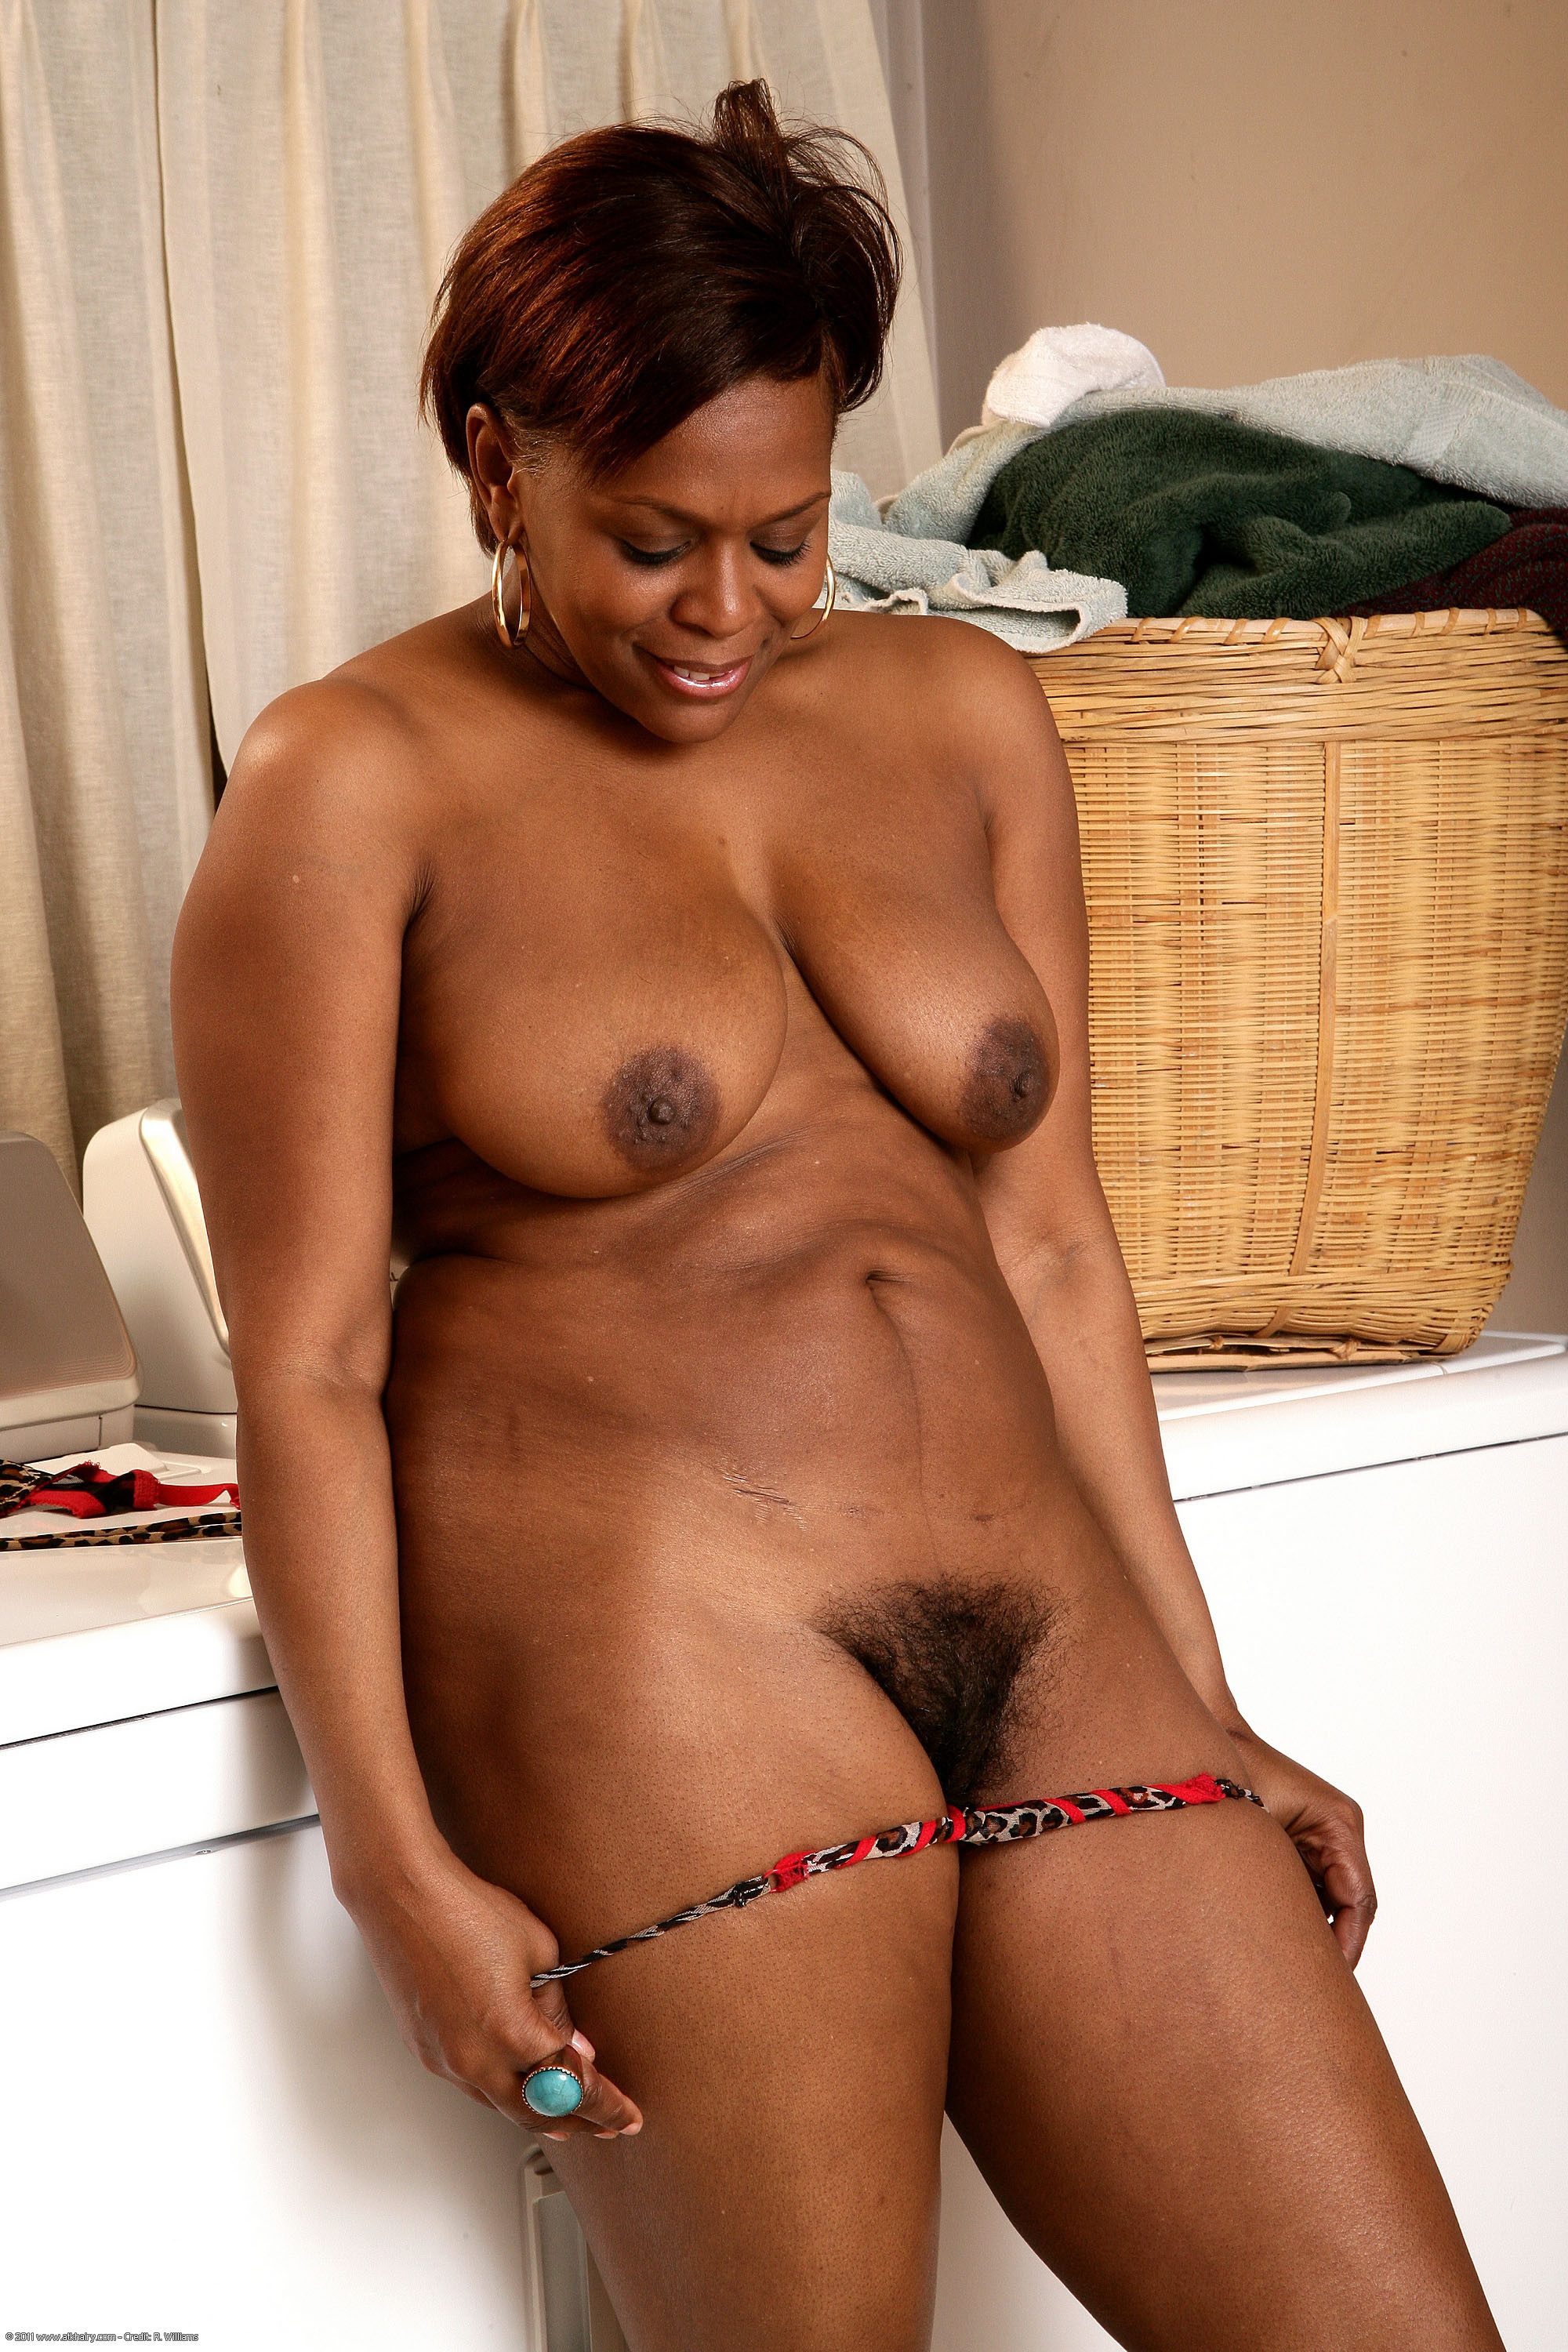 Share your Black granny nude pics reply, attribute